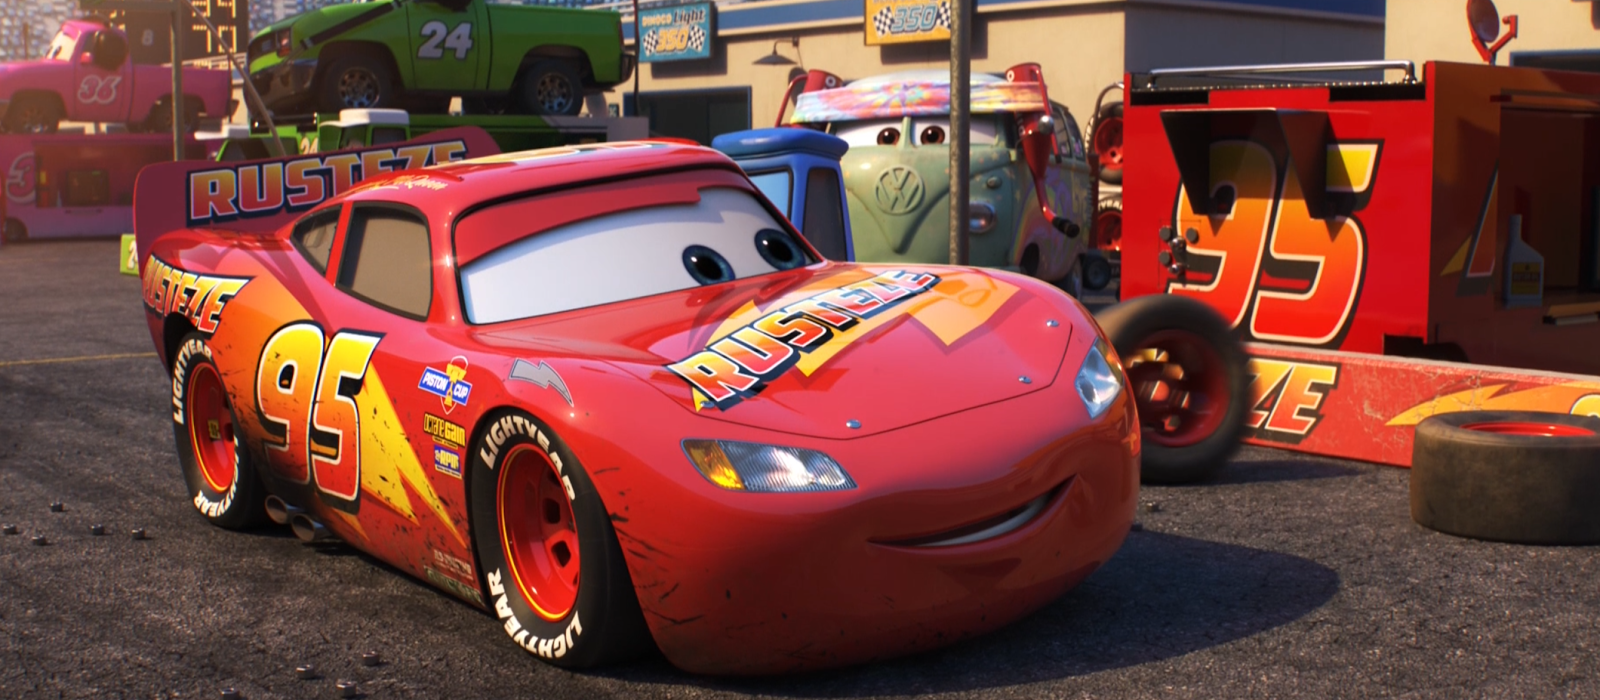 Dan The Pixar Fan Cars 3 Rust Eze Lightning Mcqueen